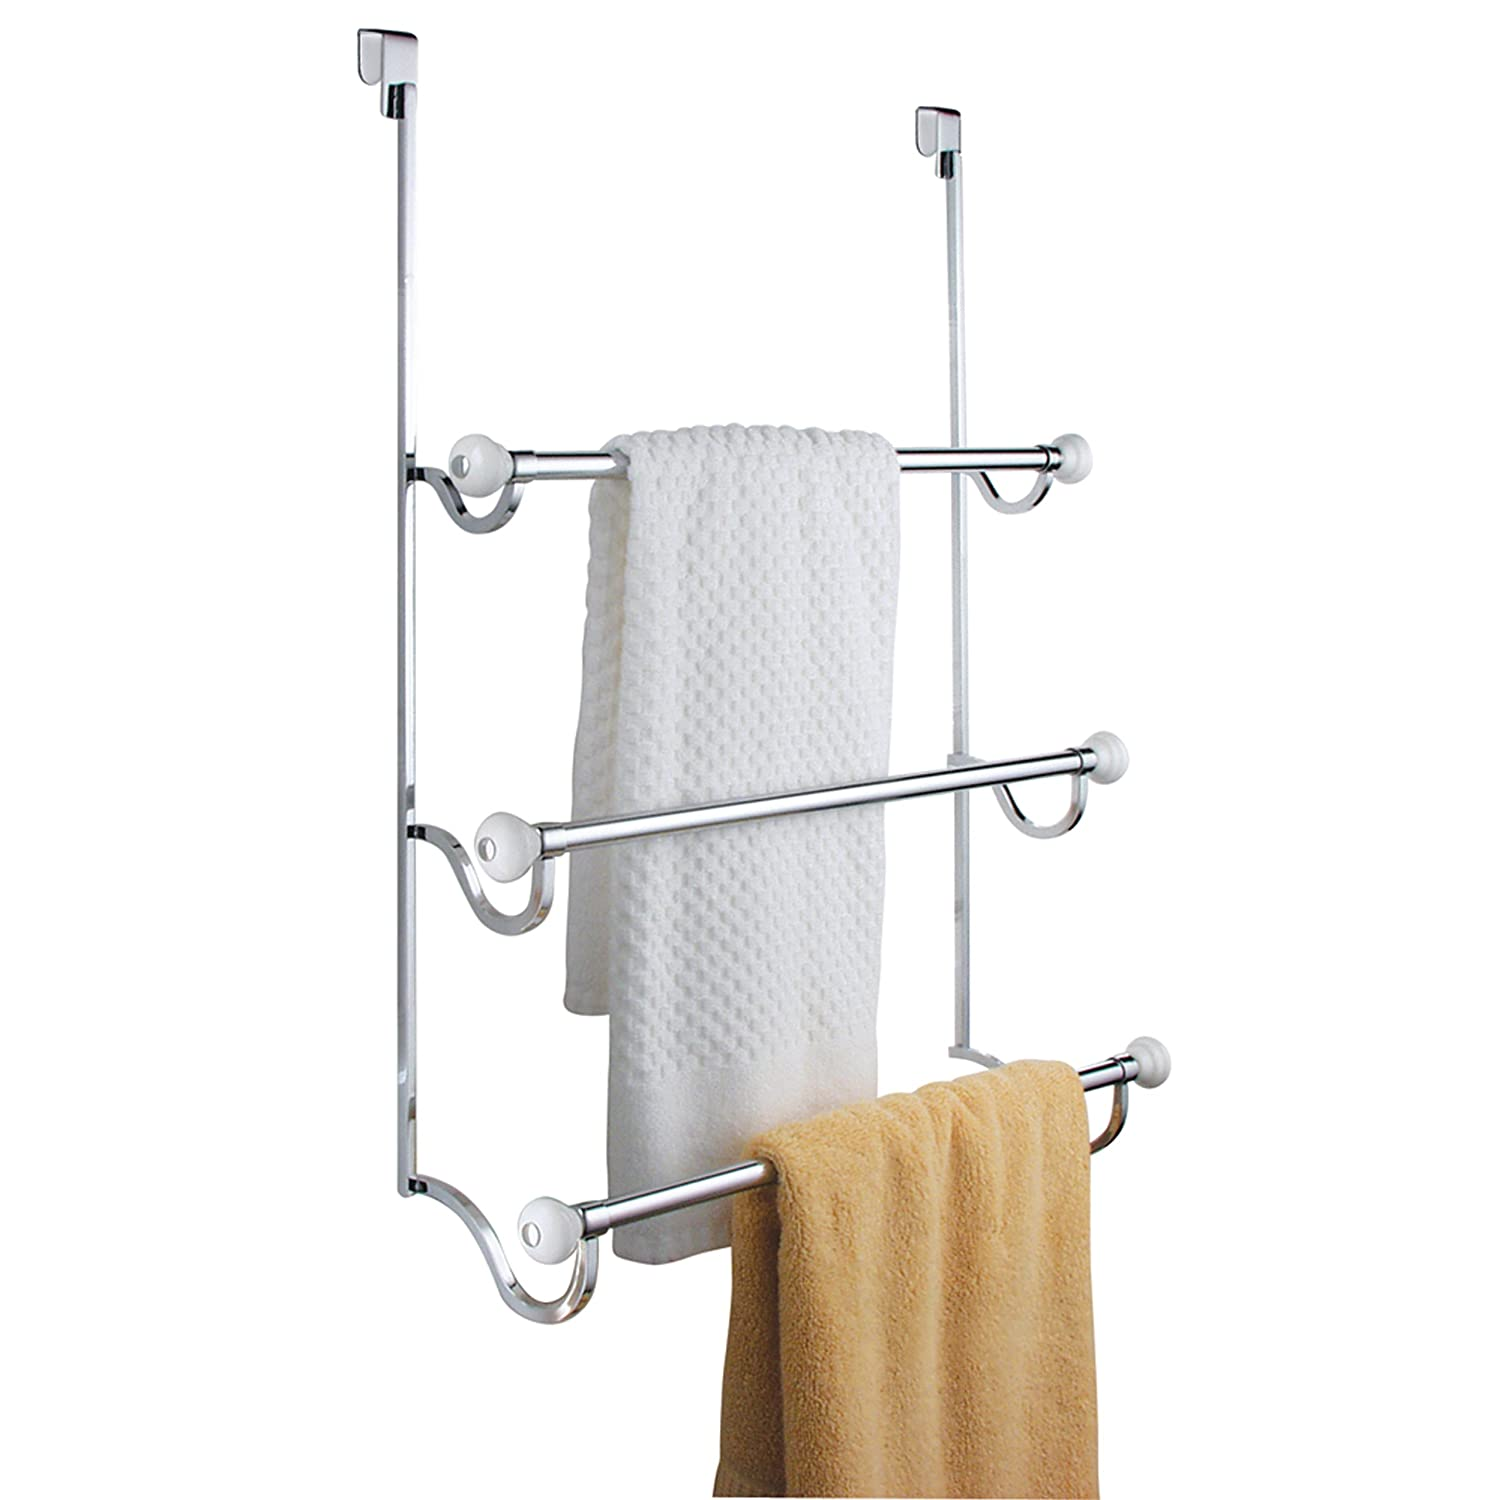 Interdesign York Overtheshowerdoor 3bar Towel Rack